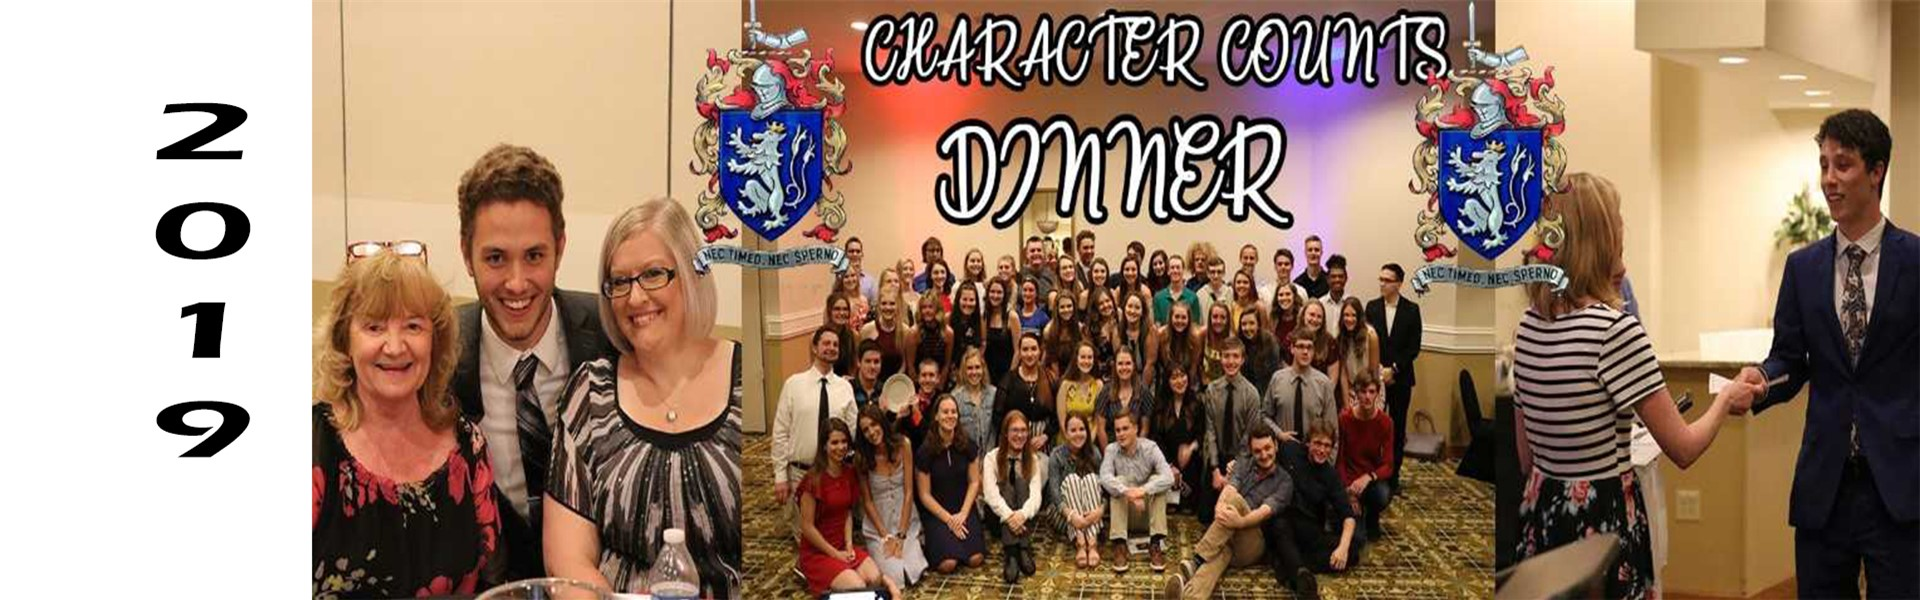 Character Counts Dinner 2019